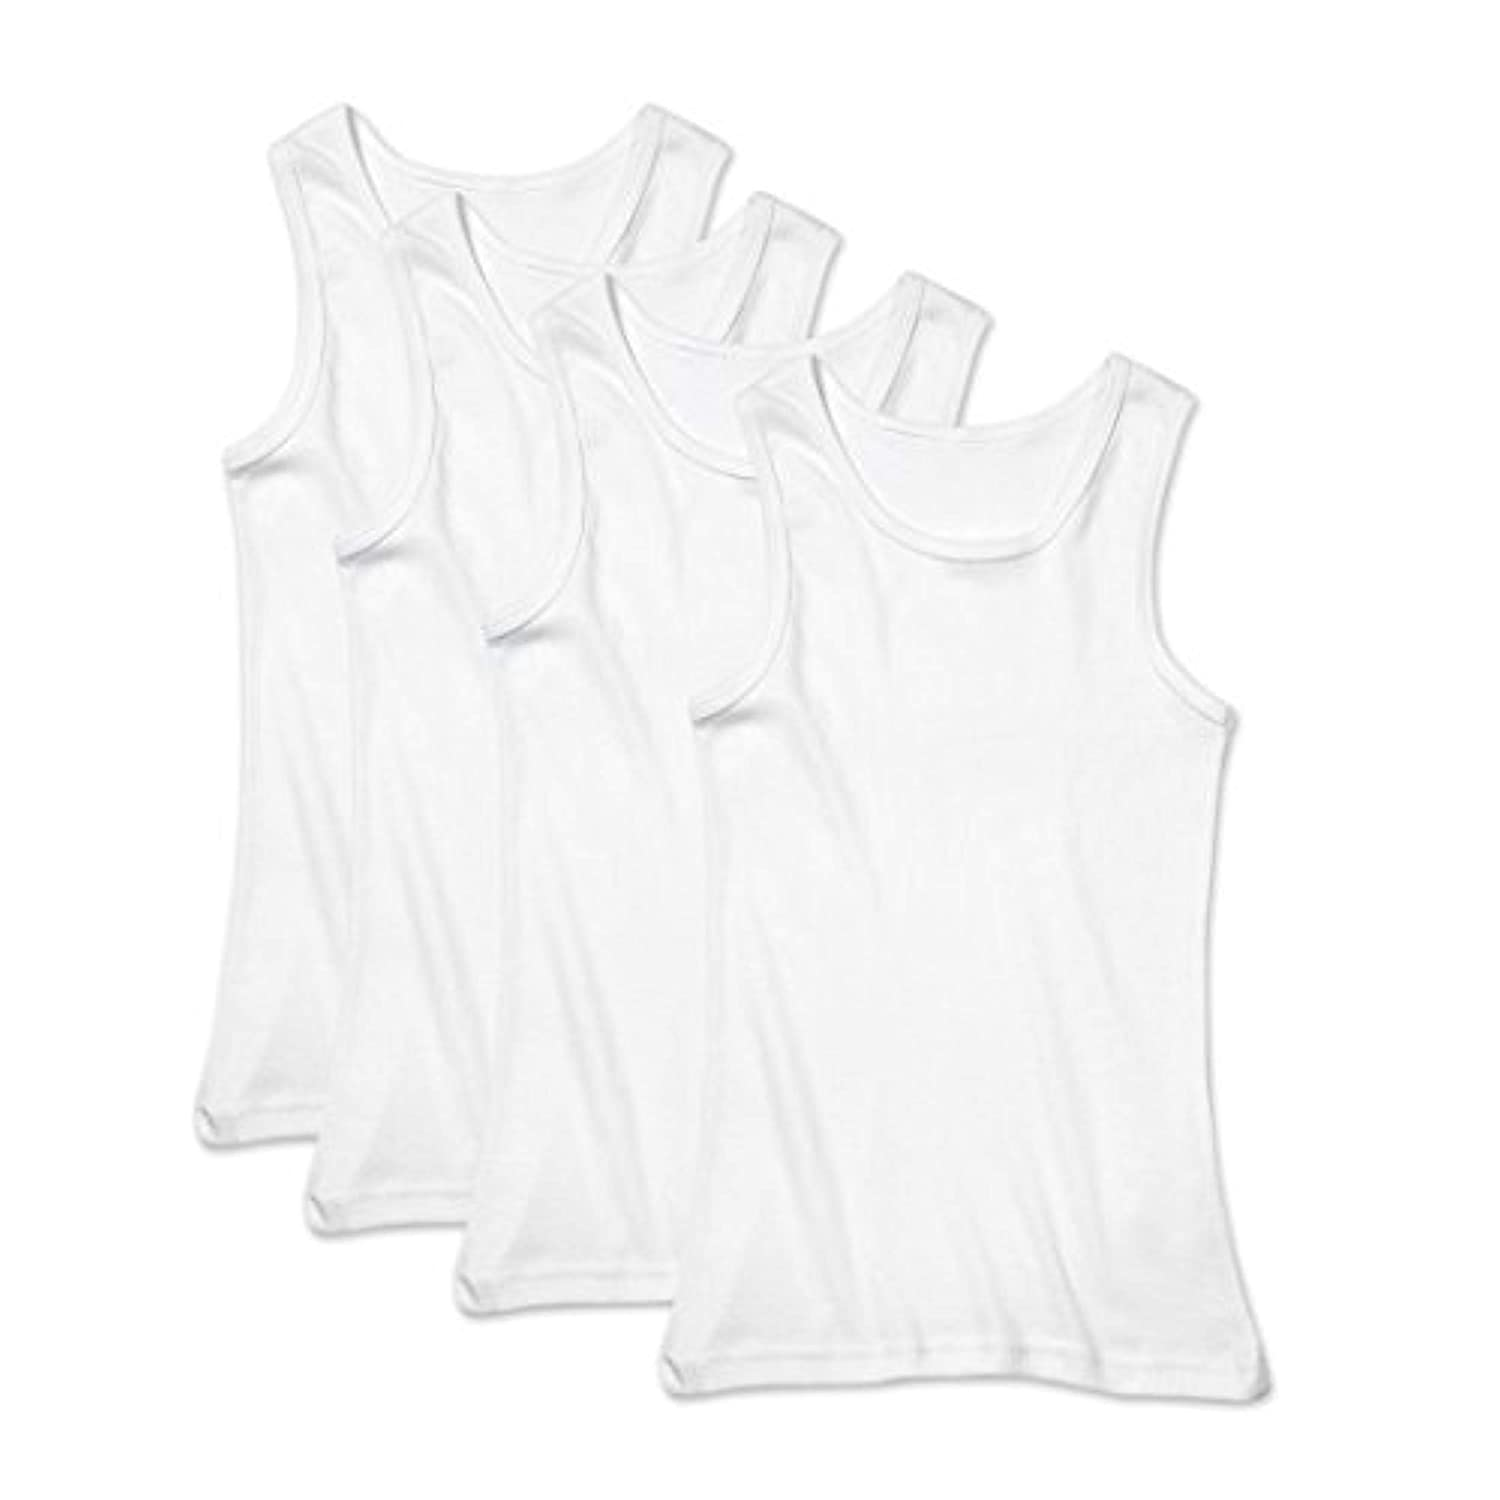 Buyless Fashion Boys Soft 100% Cotton White Scoop Neck Undershirt (4 Pack) 13-14 TW14-BW-13-14